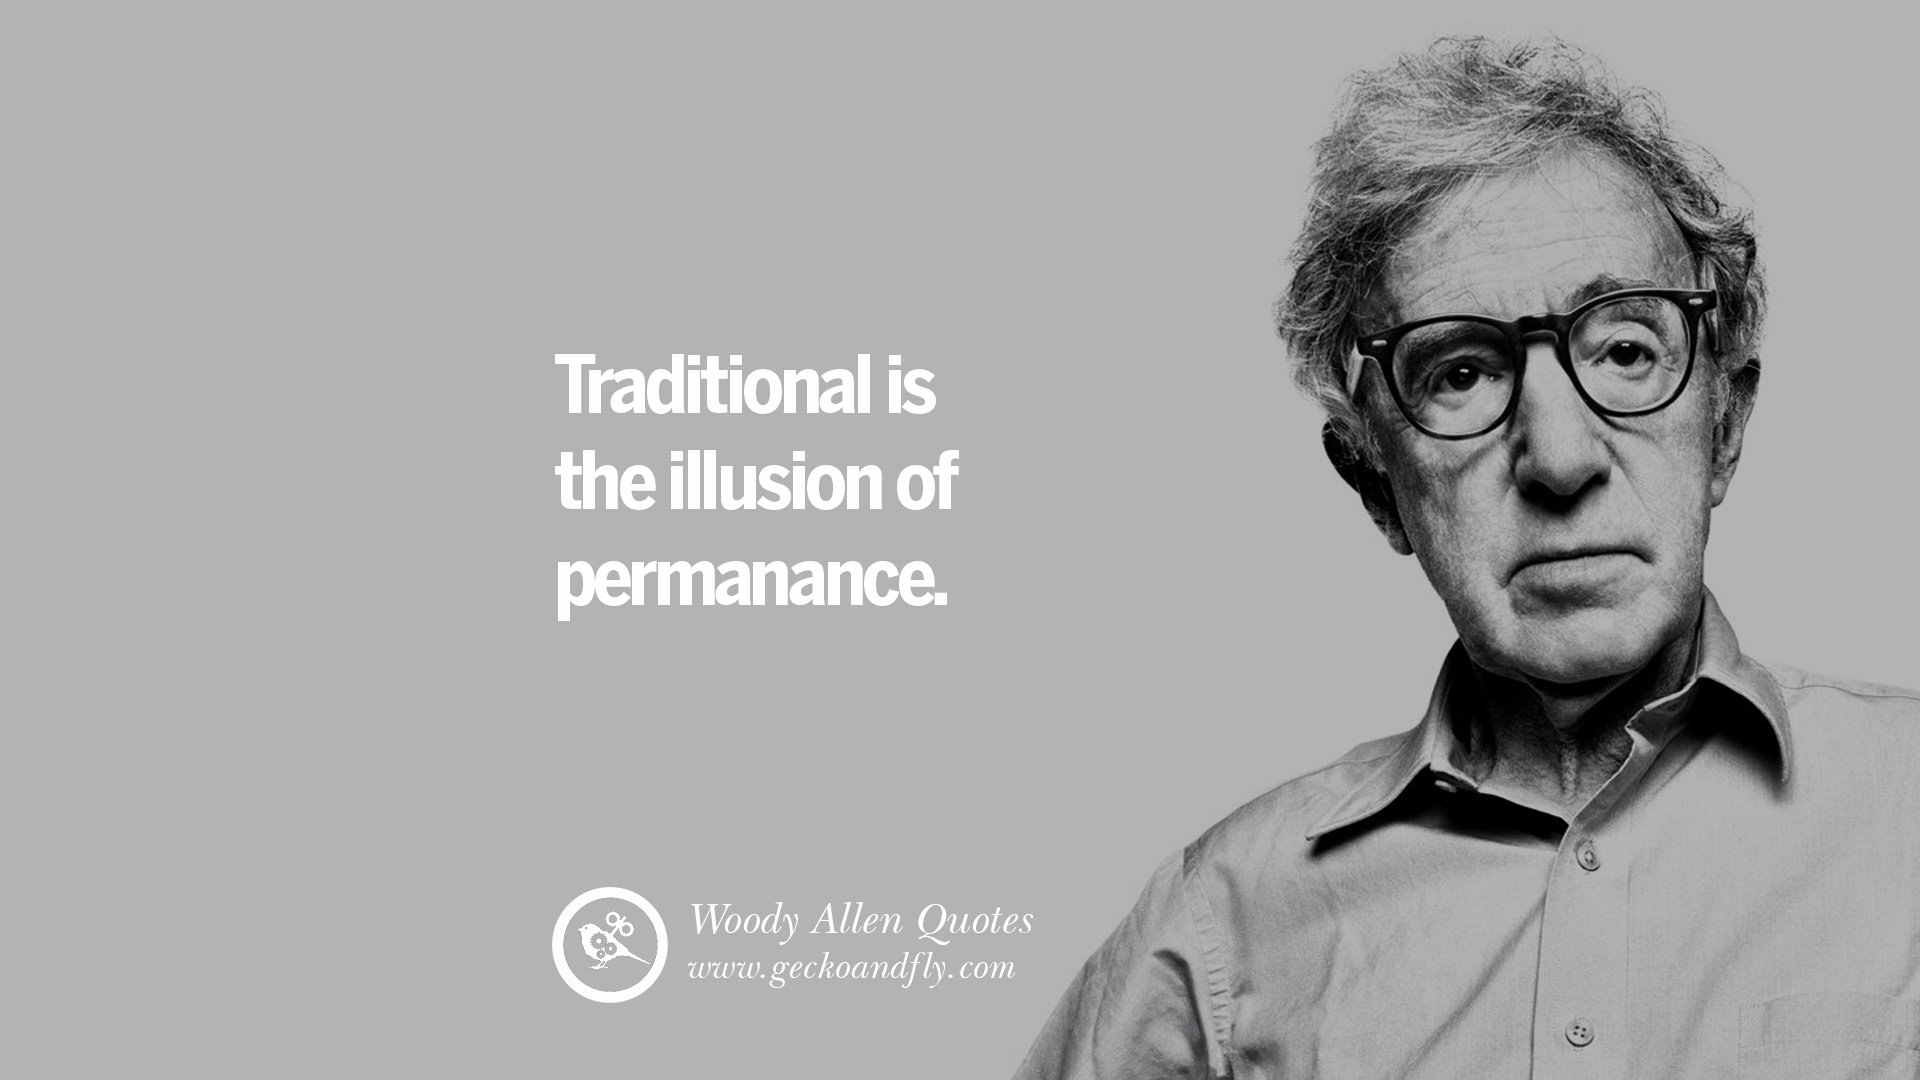 Movie Life Quotes 24 Woody Allen Quotes On Movies Films Life Religion And More